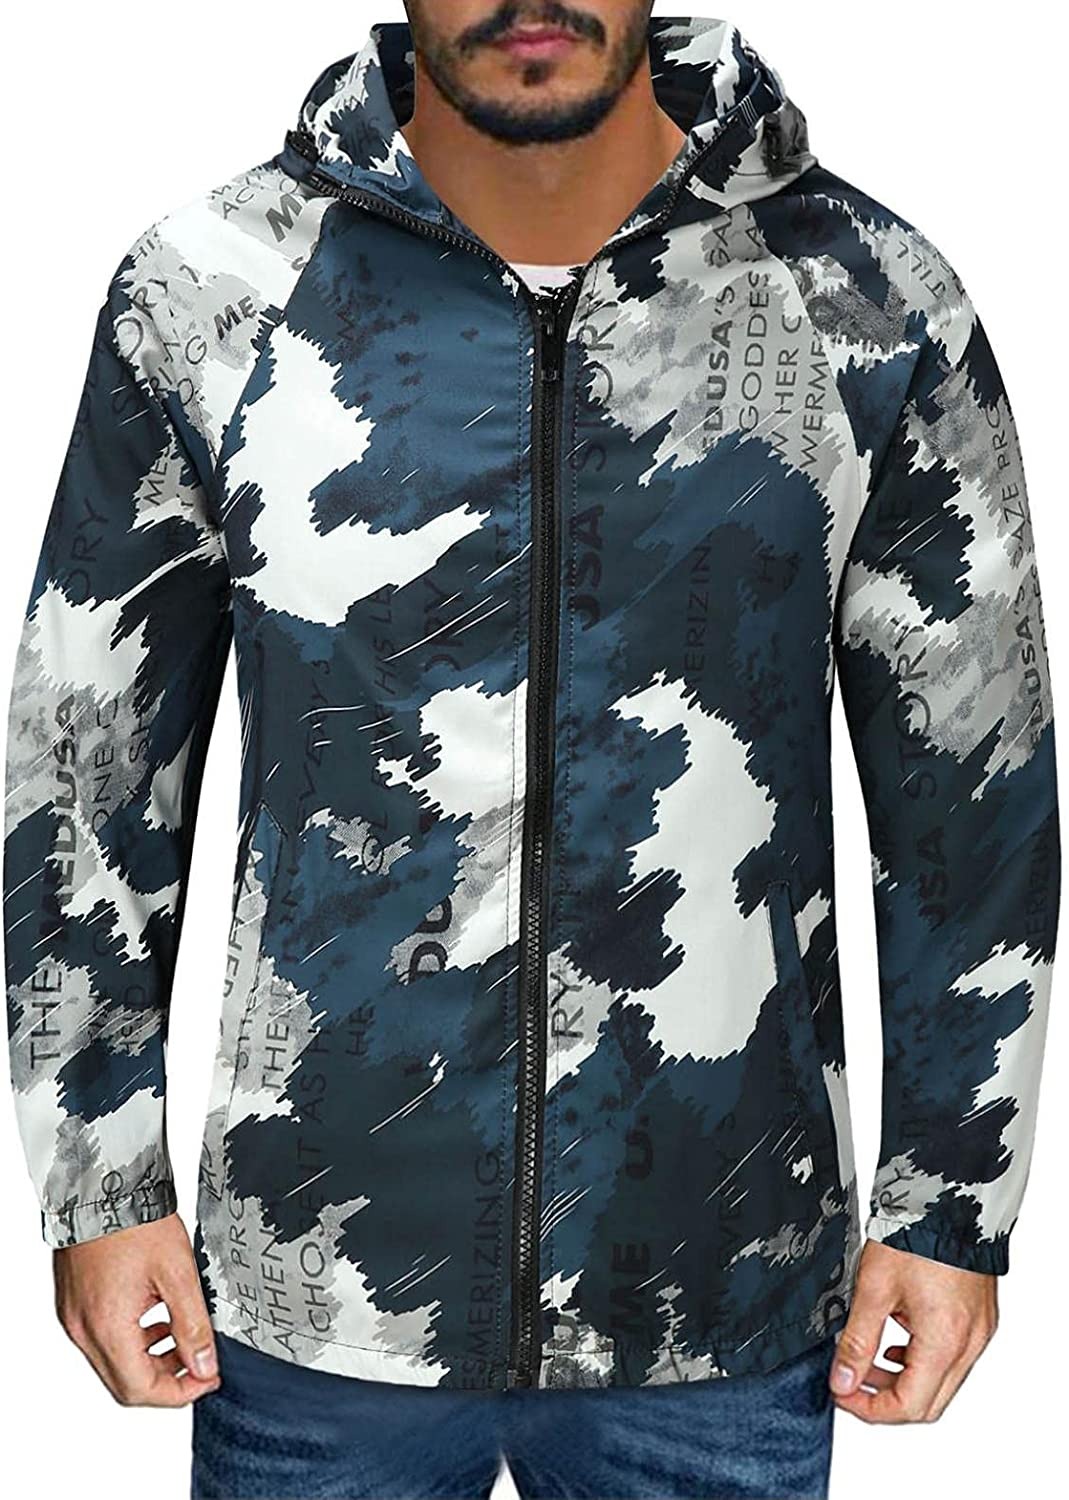 Clearance Sales Mens Outdoors Hooded Jacket Fashion Lightweight Quick Dry Sports Running Hoodie Sweatshirt Outwear